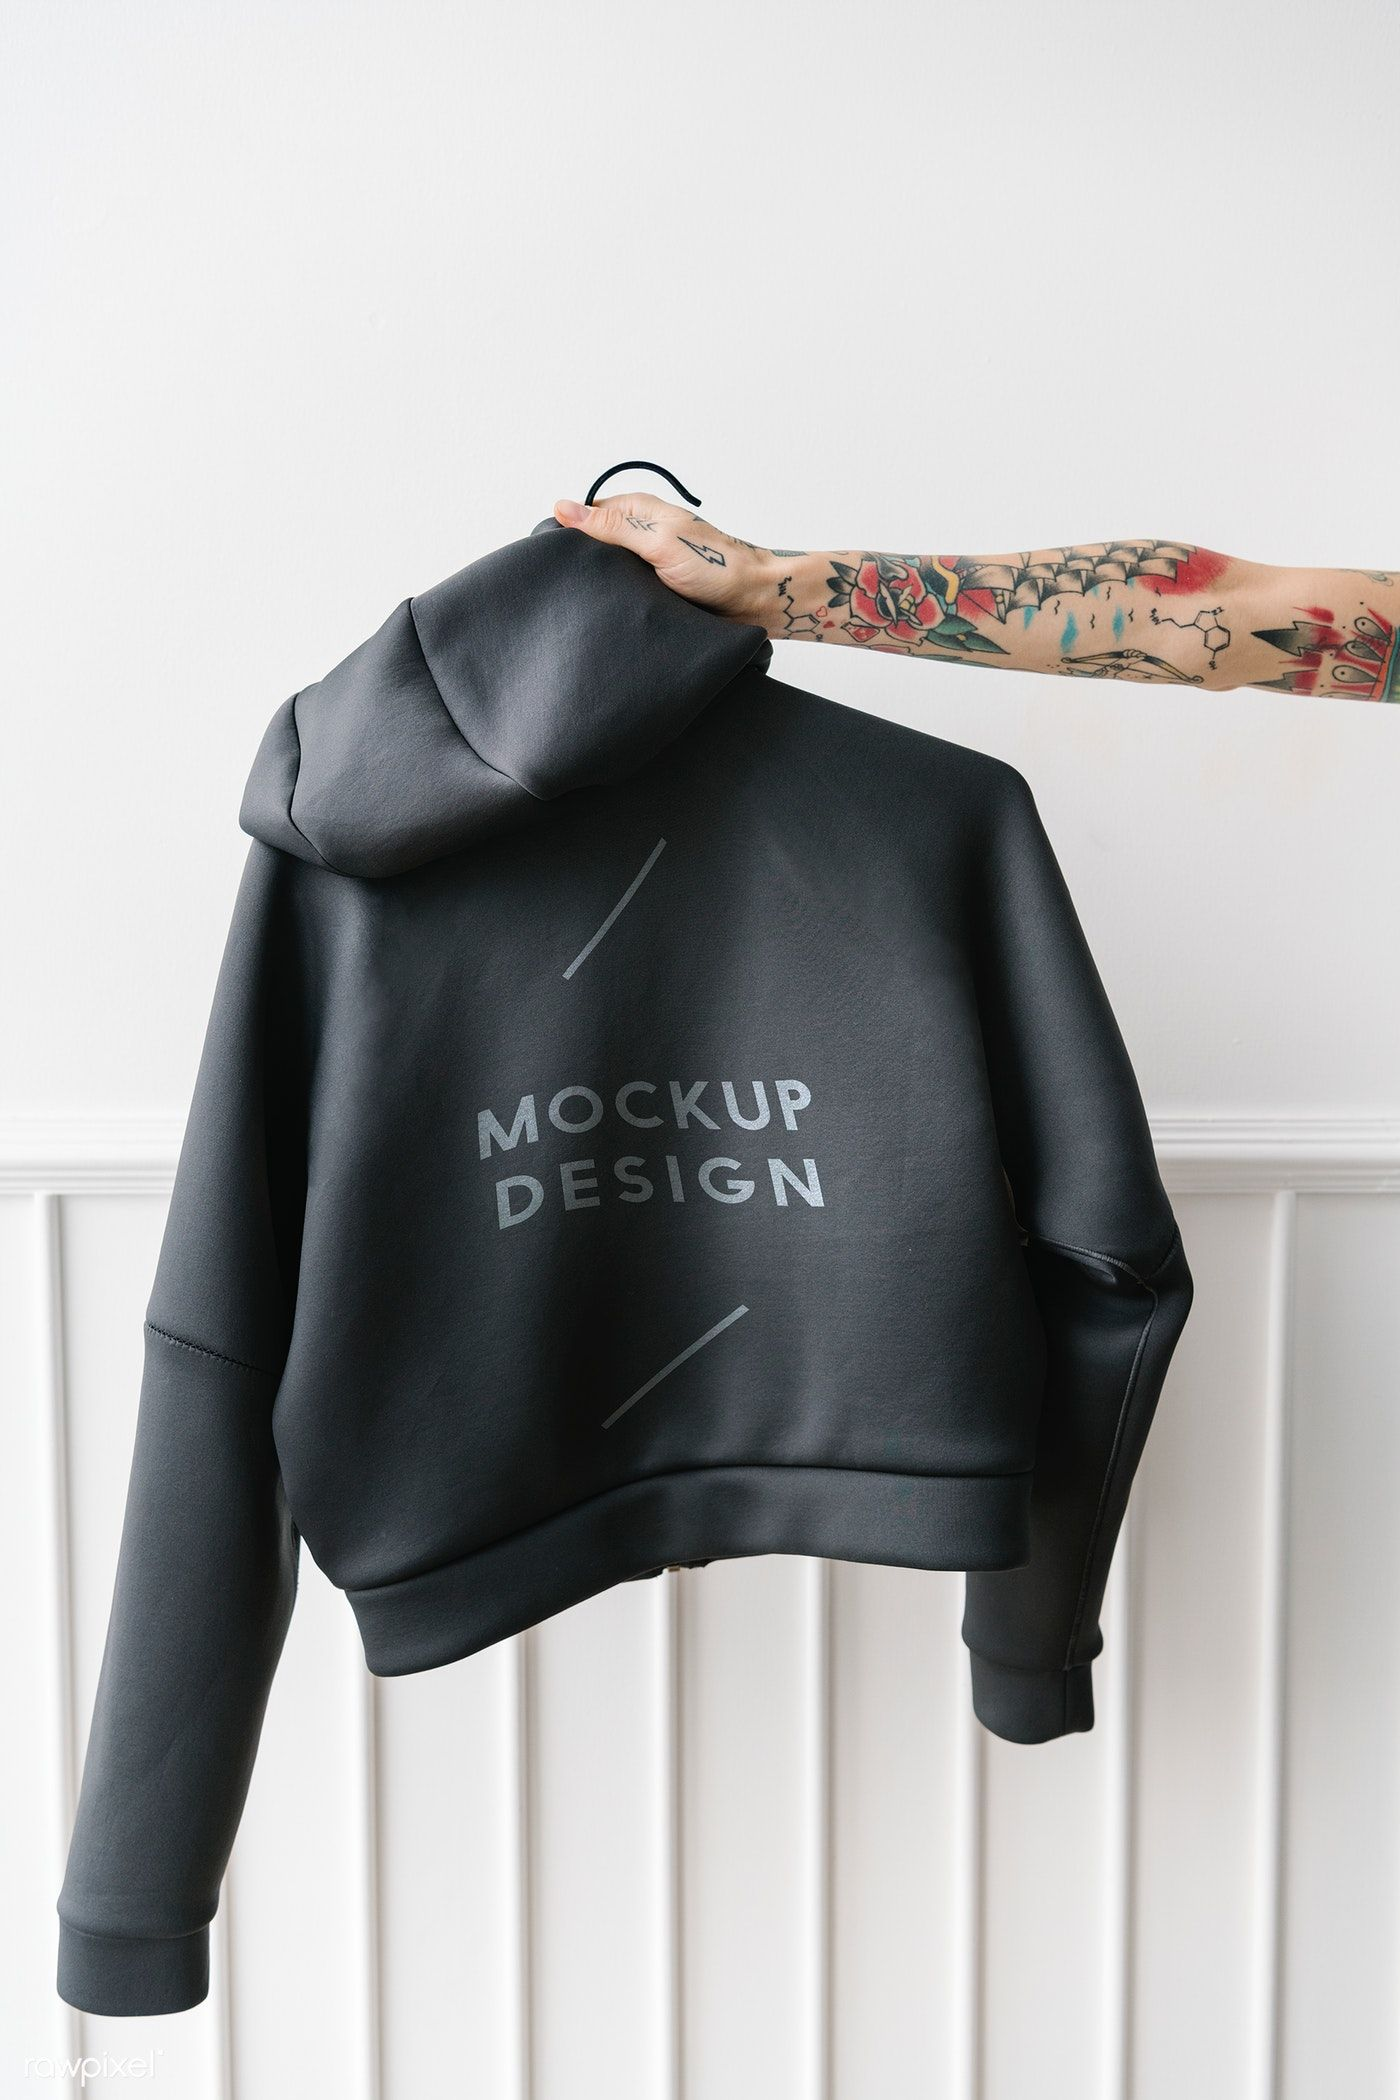 Download Download Premium Psd Of Tattooed Woman Holding A Gray Hoodie Mockup 1215336 Hoodie Mockup Grey Hoodie Shirt Mockup